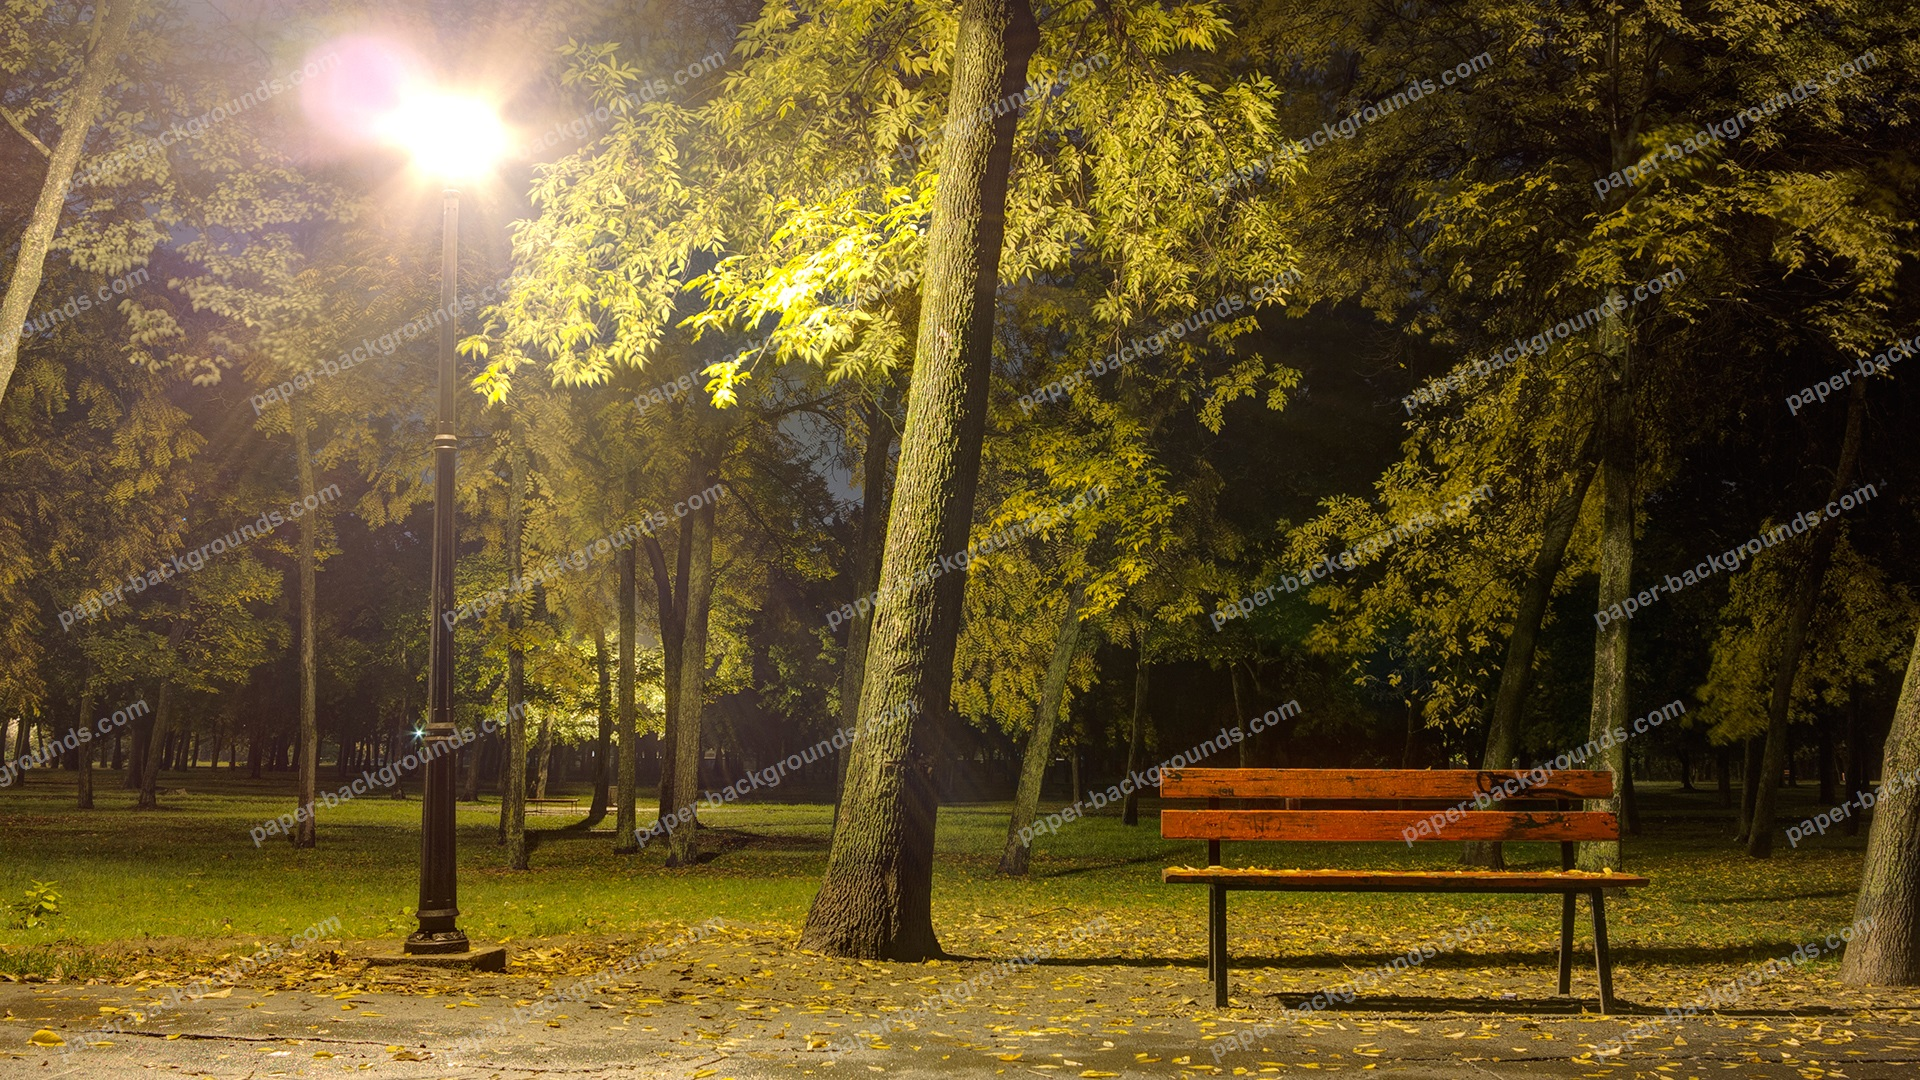 Bench In Park At Night With Light HD 1920 x 1080p